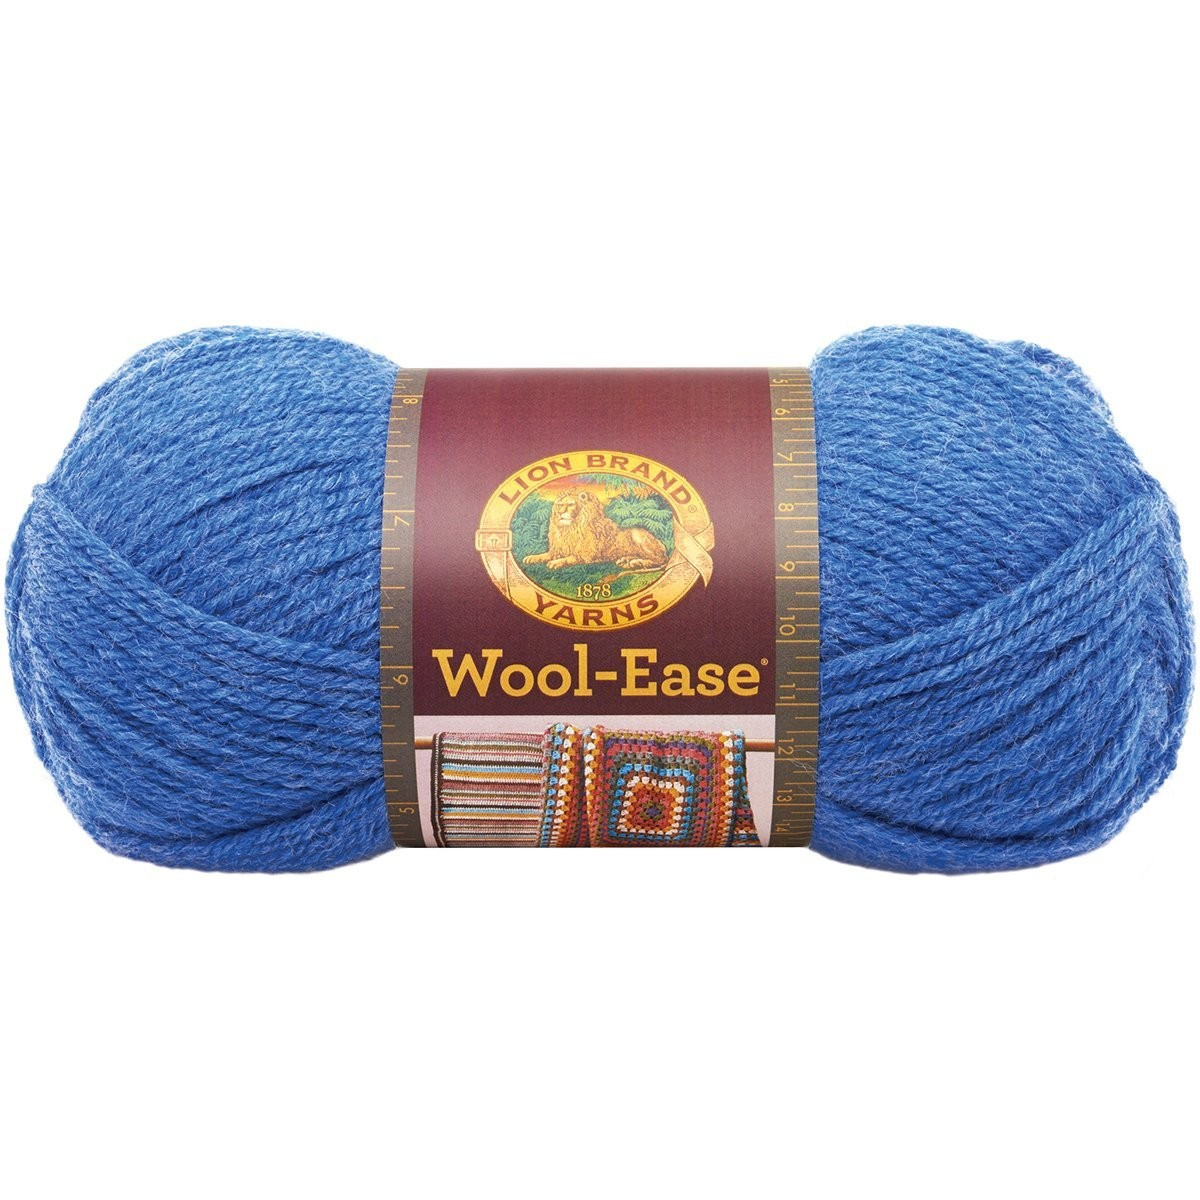 New Wool Ease Blue Heather Wool Ease Of Charming 46 Pics Wool Ease